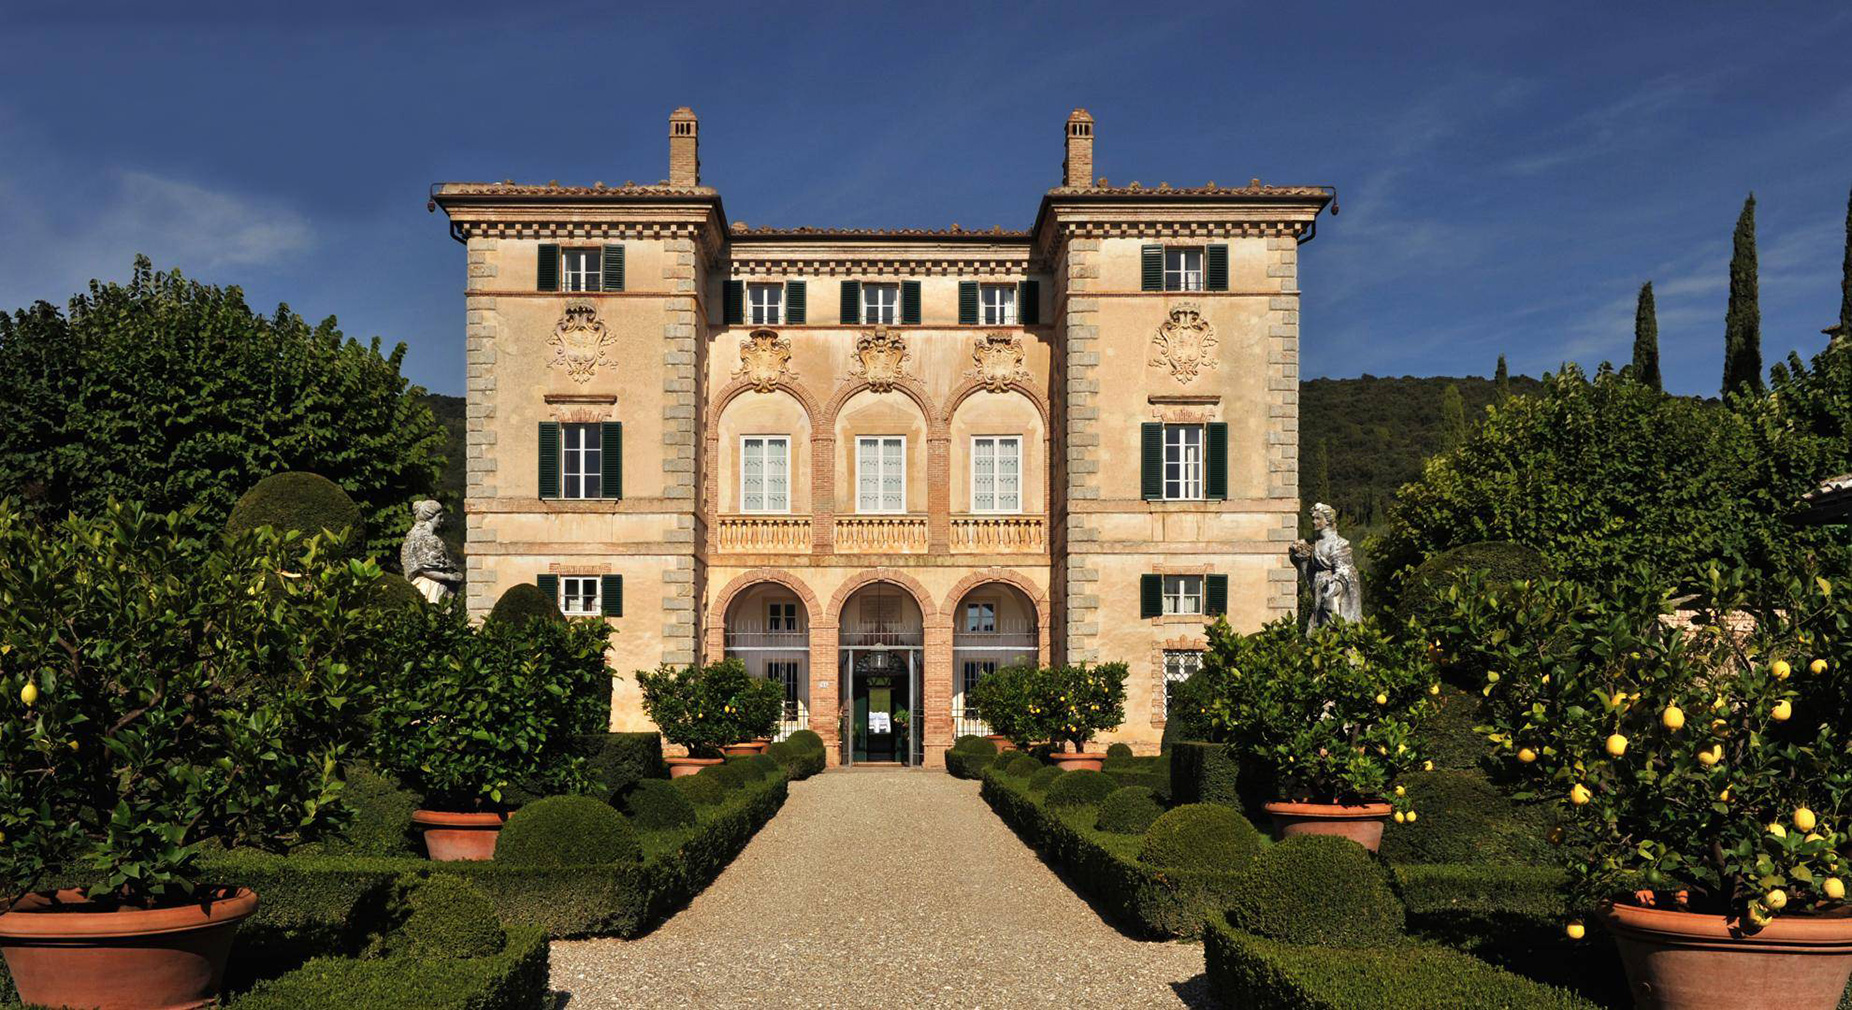 Holiday home of the week: an opulent Baroque villa in